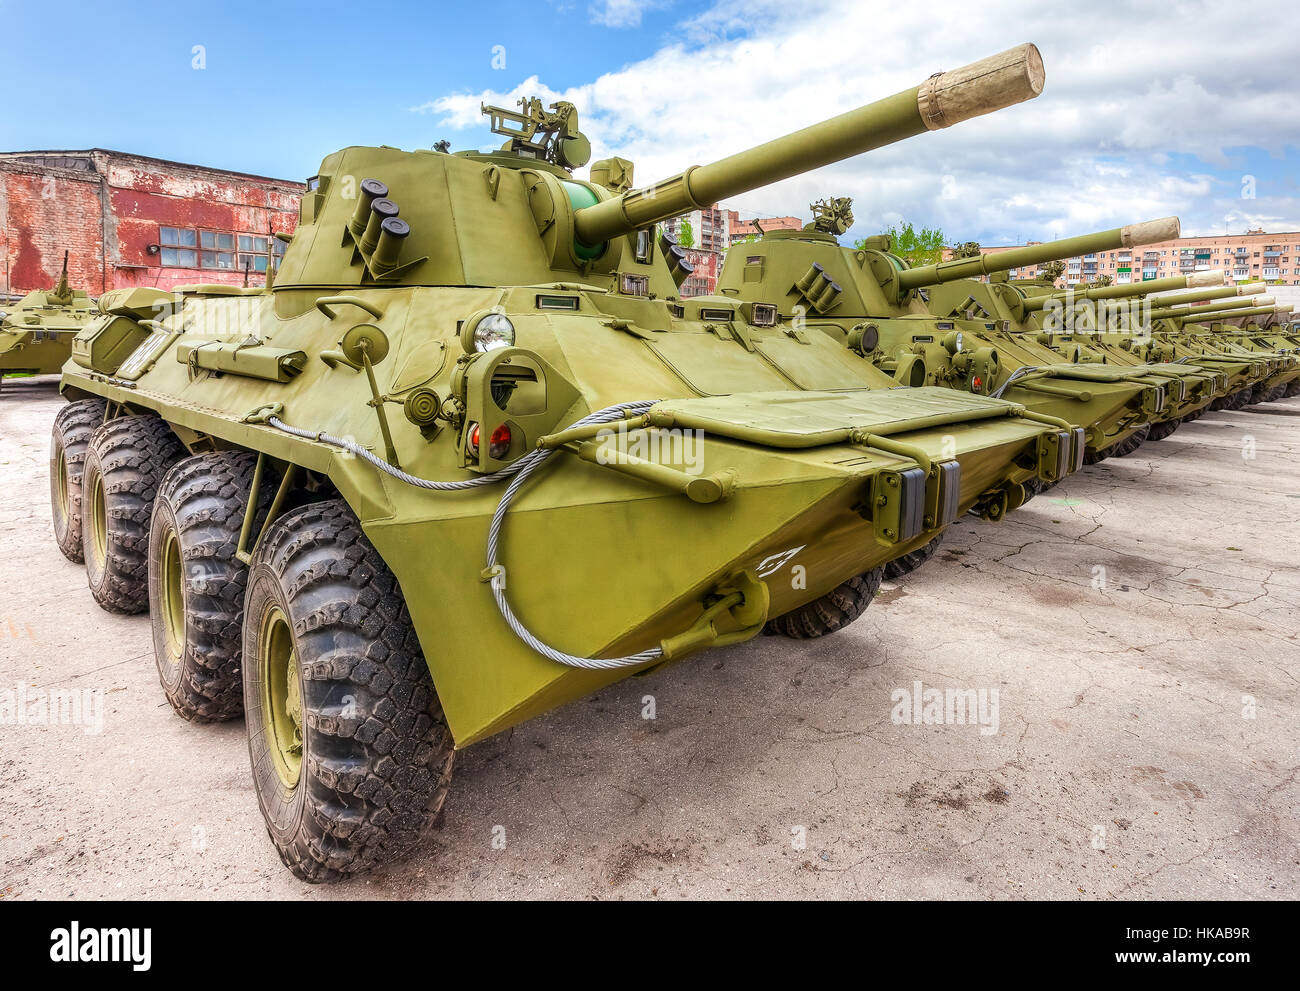 Nona-SVK 120mm self-propelled mortar carrier on wheeled chassis of the BTR-80 - Stock Image